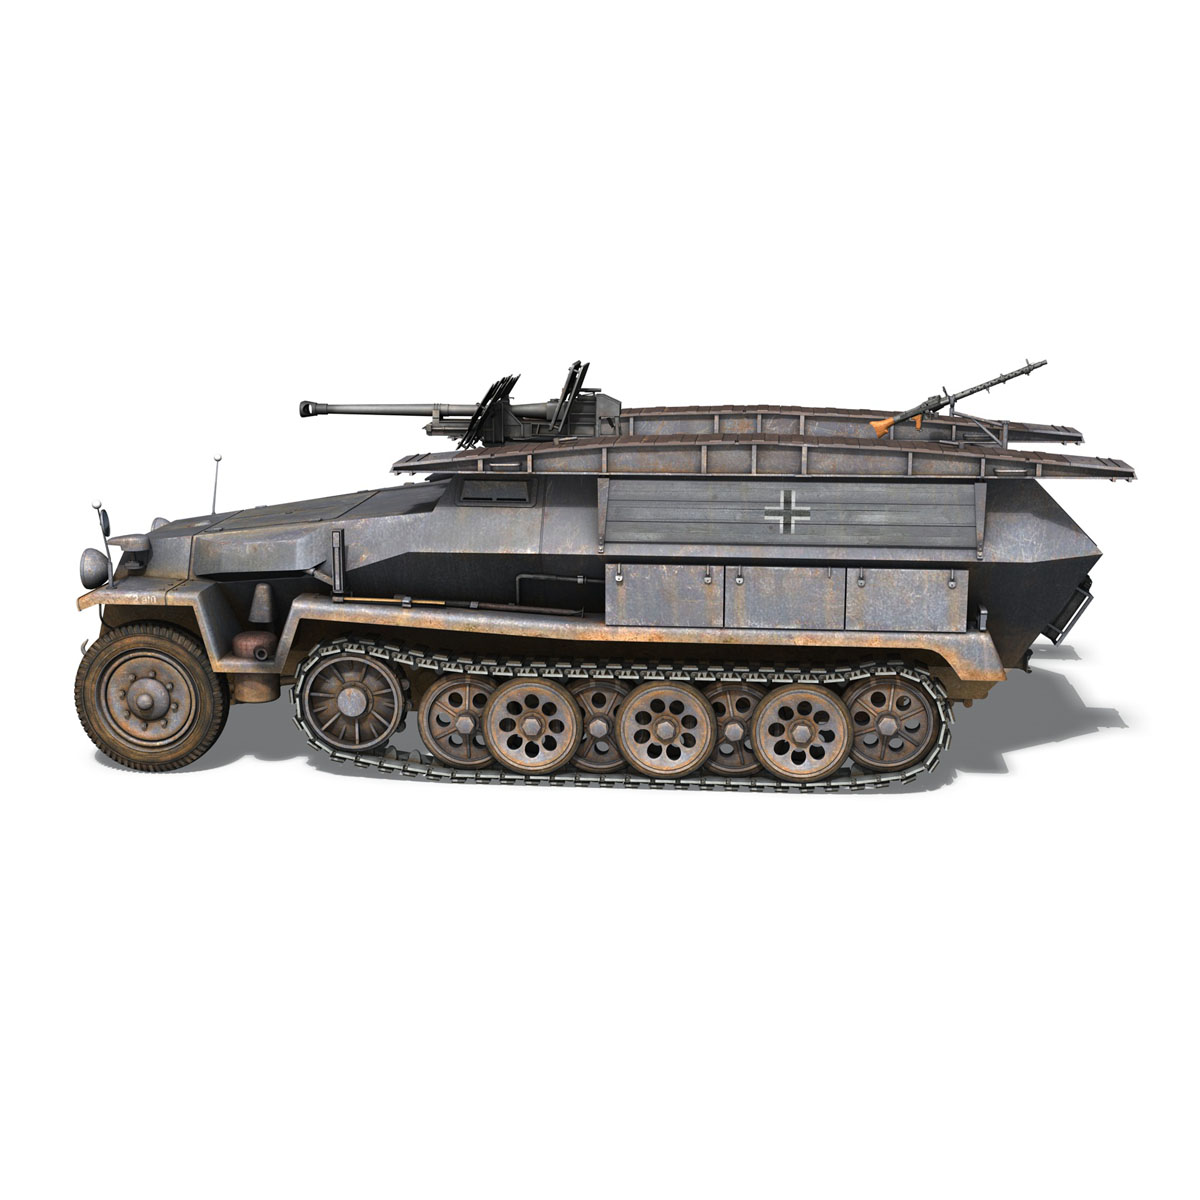 sd.kfz 251/7 ausf.c – pioneer assault bridge 3d model 3ds fbx c4d lwo obj 201524